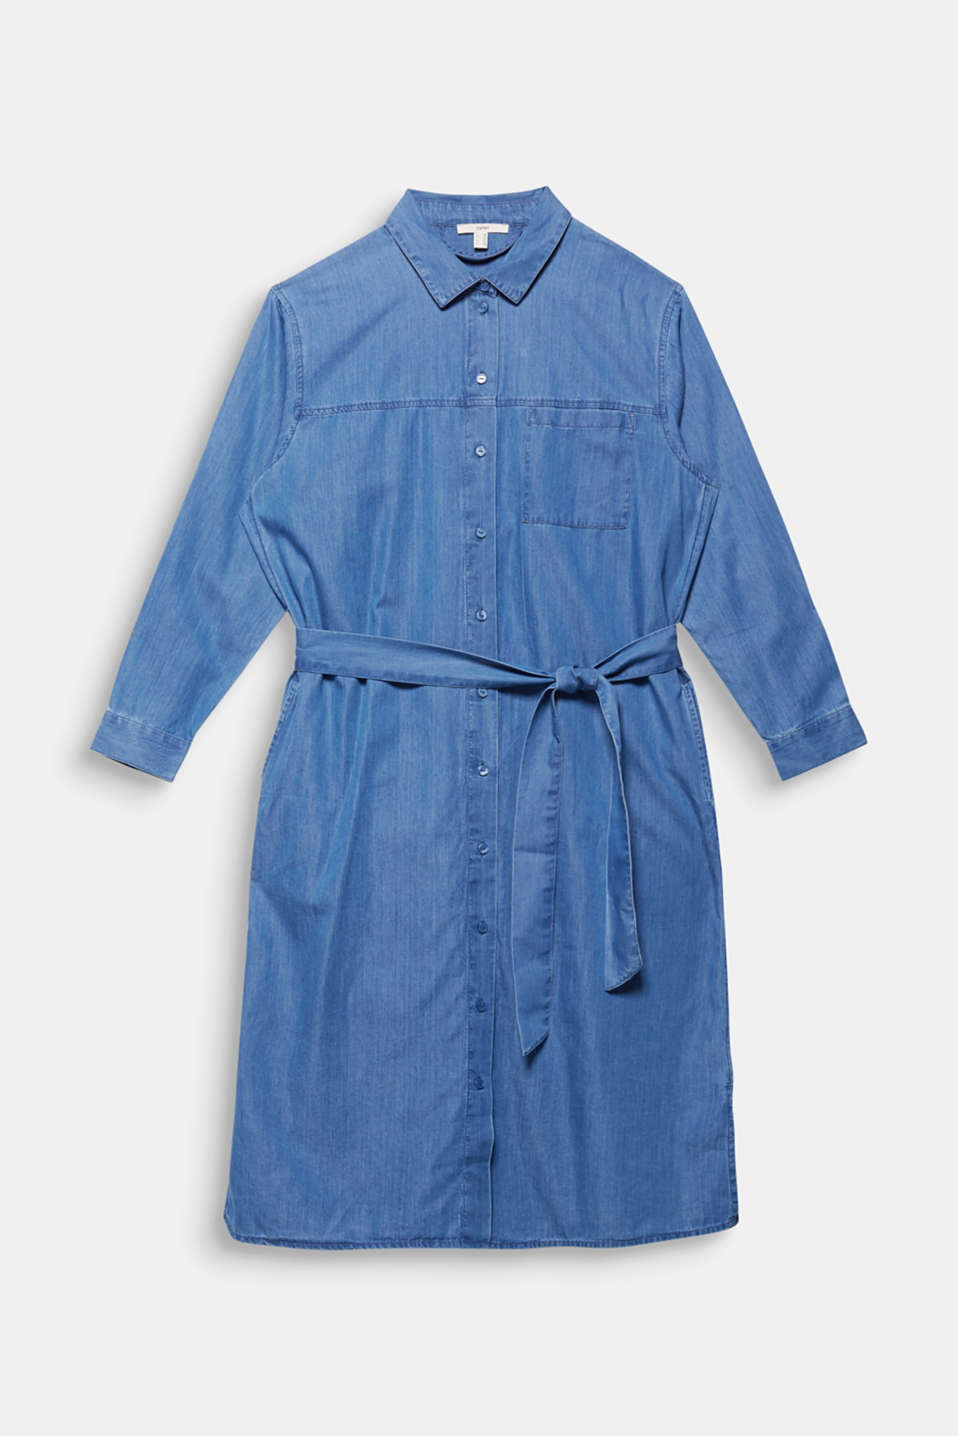 CURVY with TENCEL™: Denim-effect shirt dress, BLUE MEDIUM WASH, detail image number 7